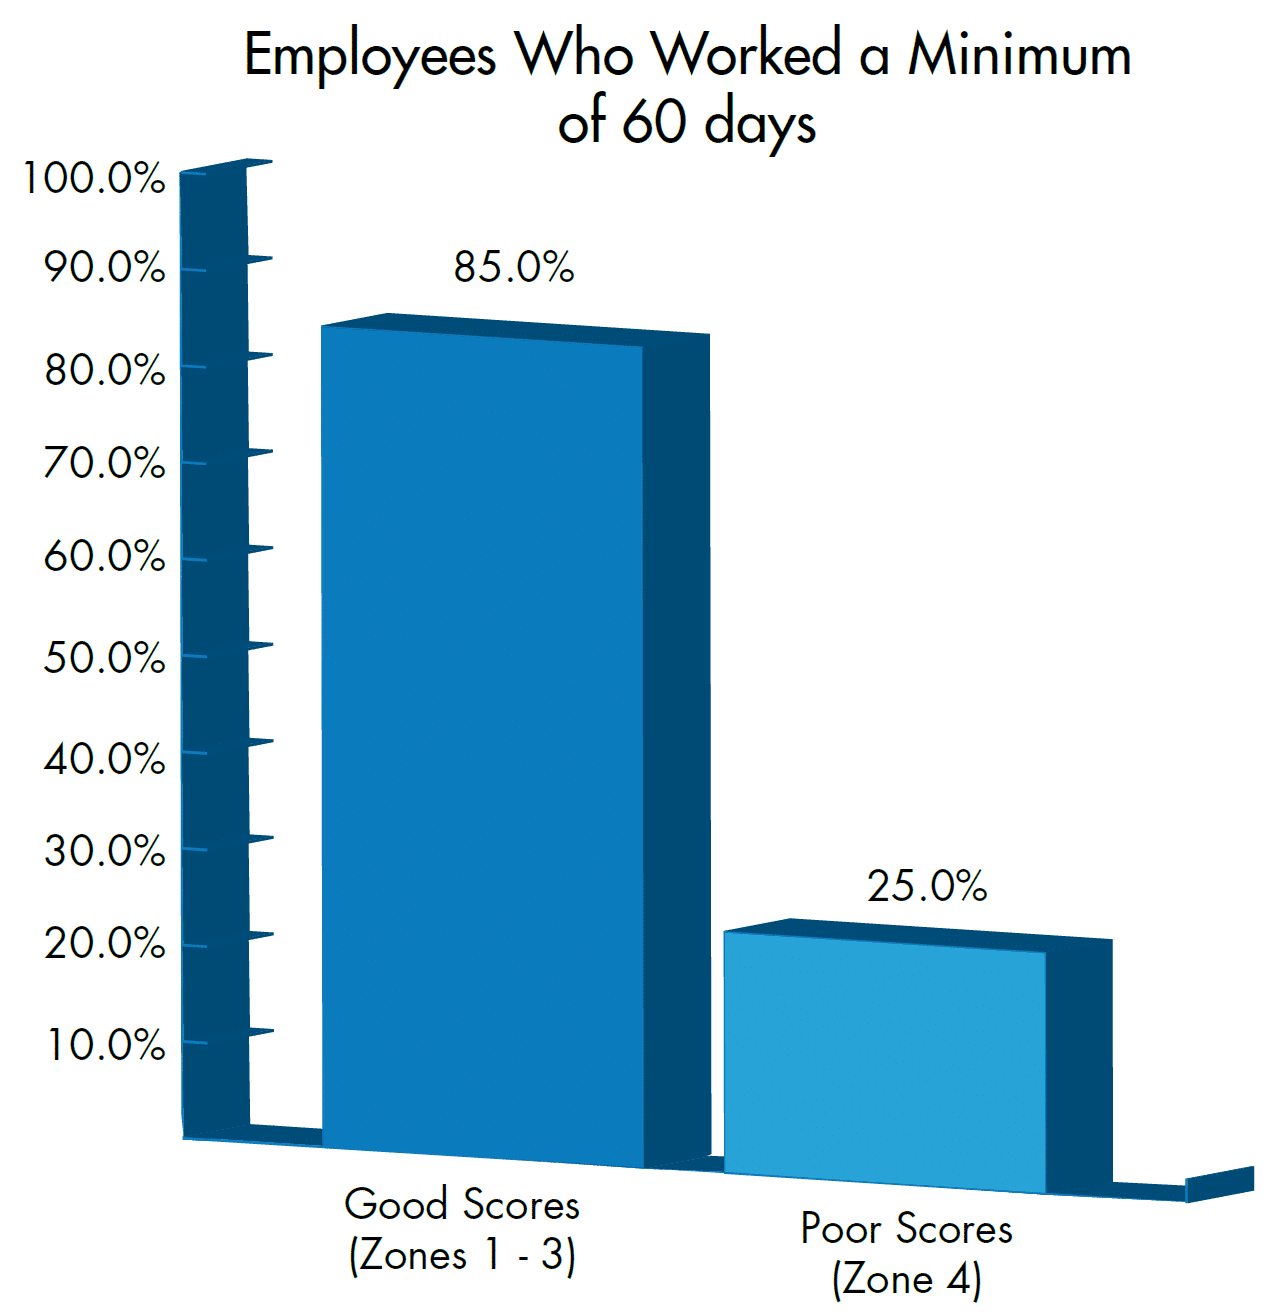 Employees who worked min 60 days